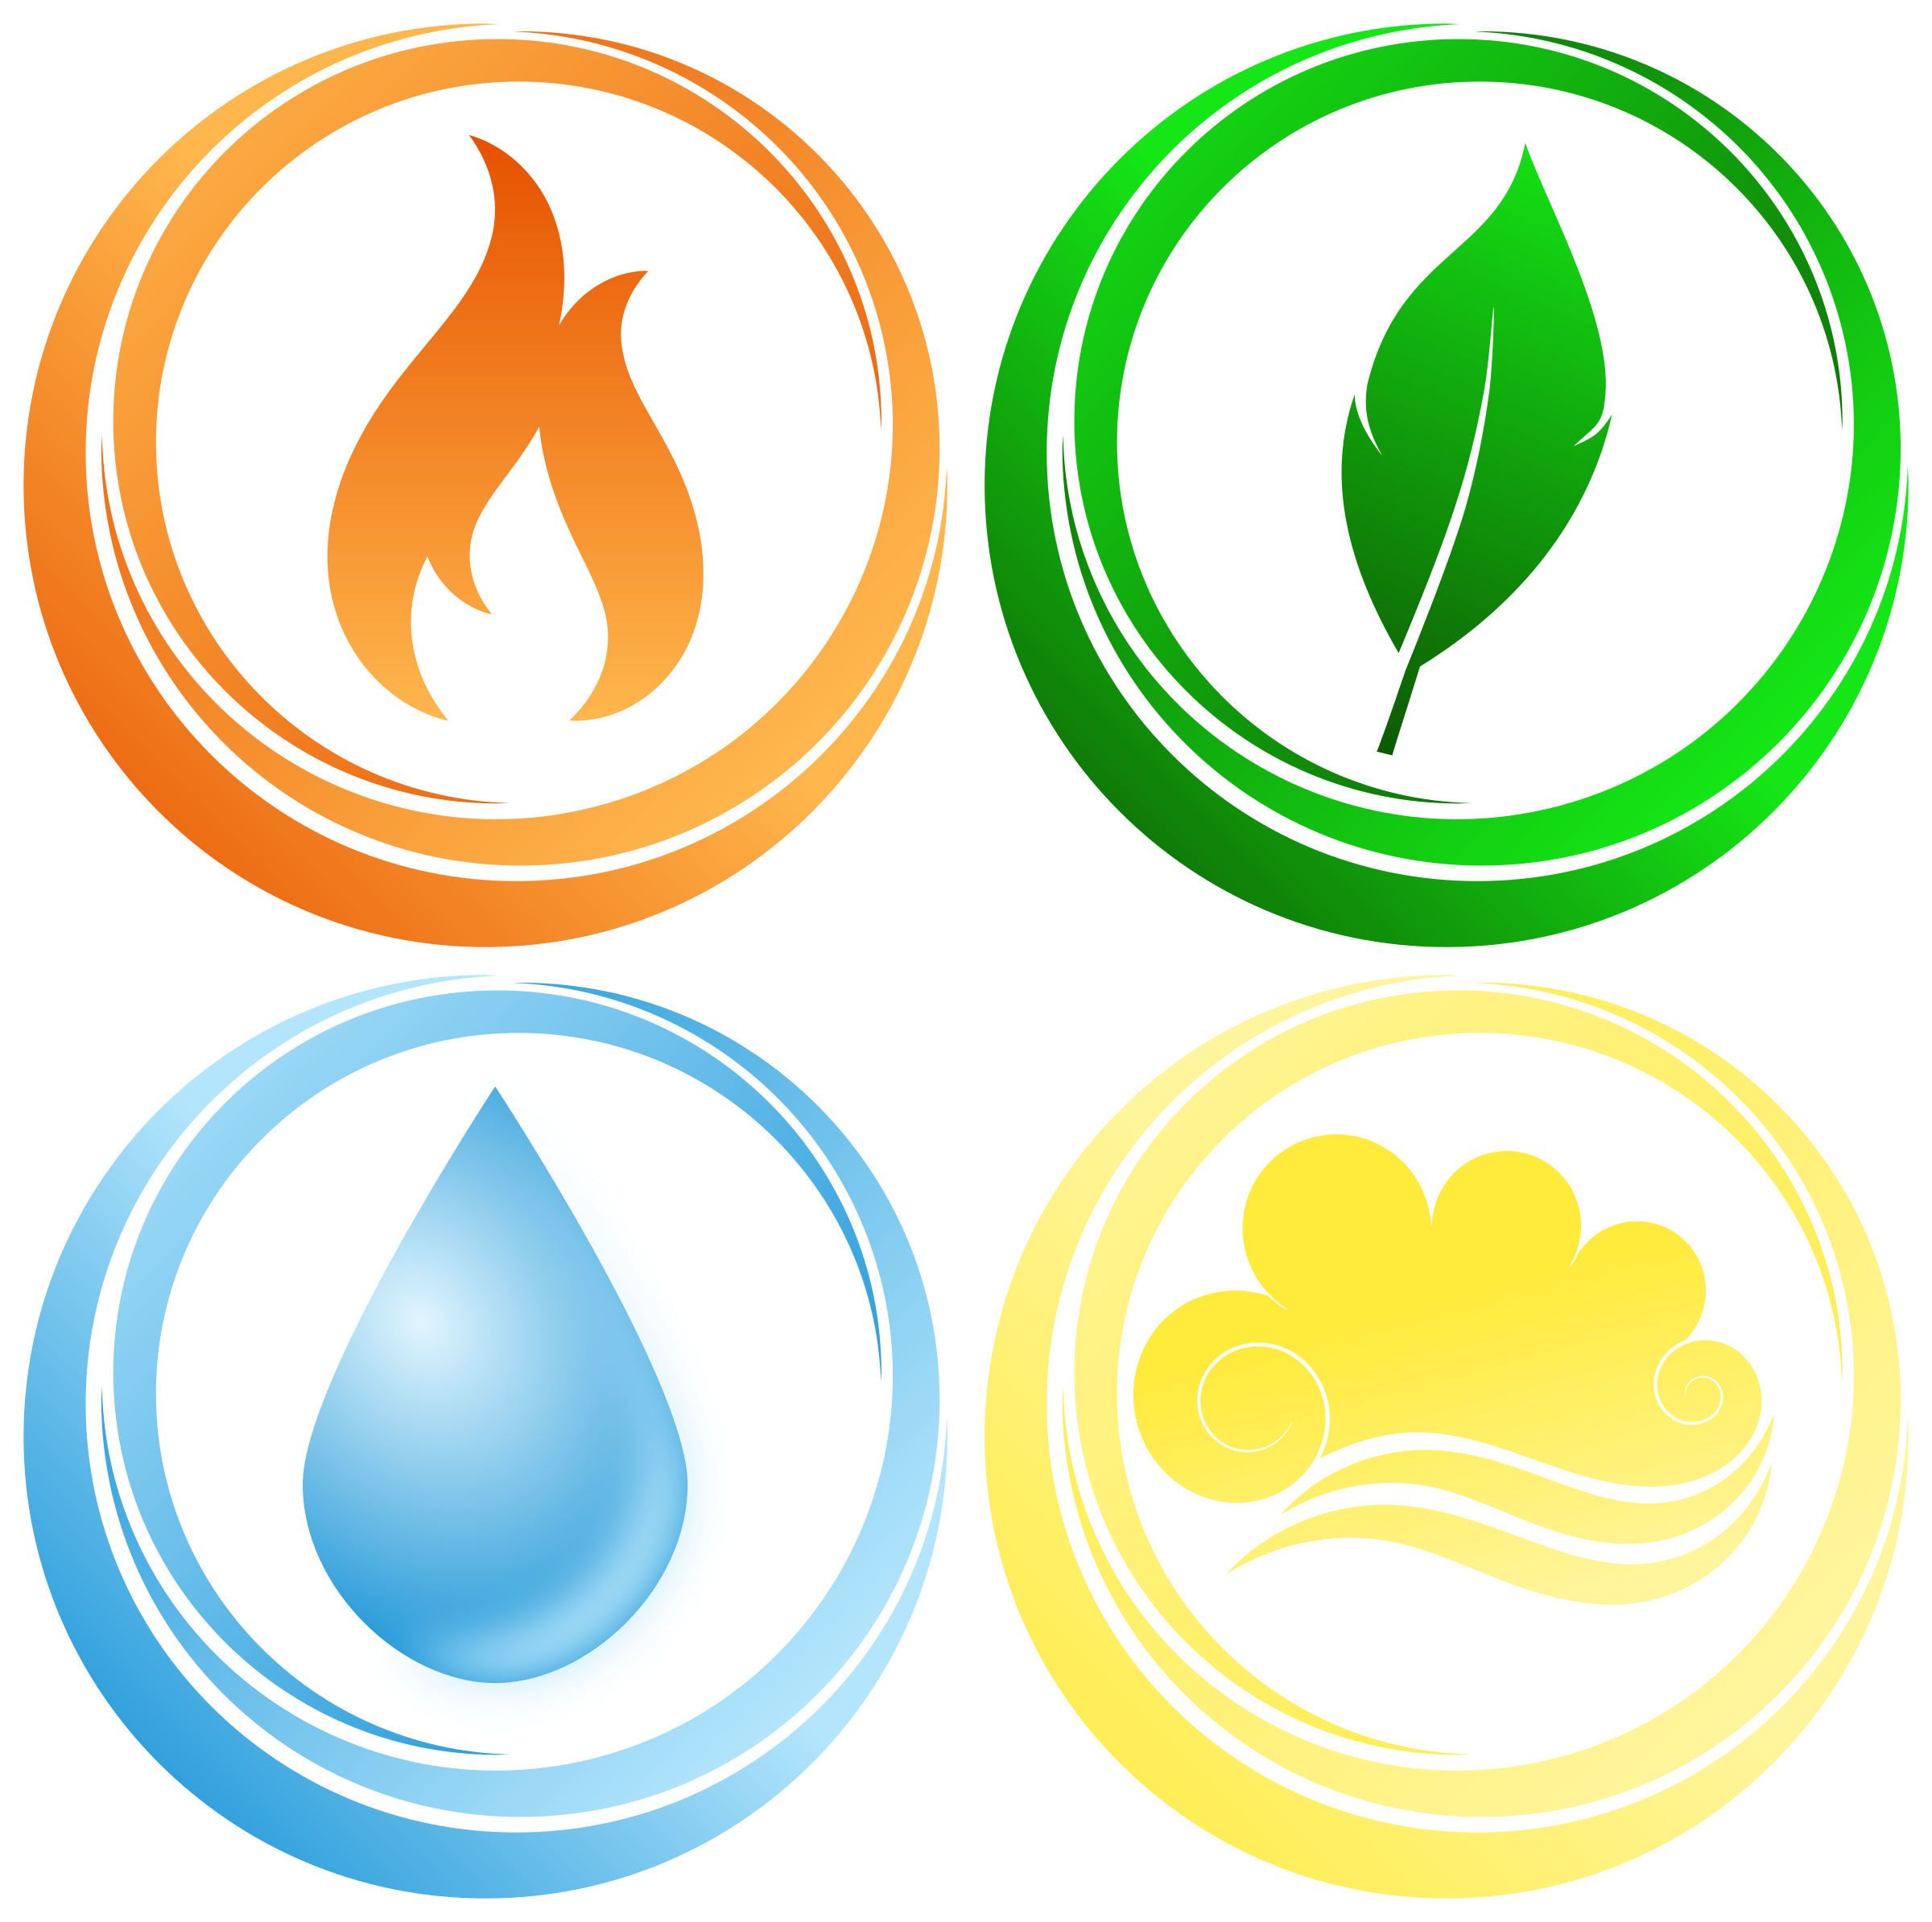 The Four Elements clipart #9, Download drawings